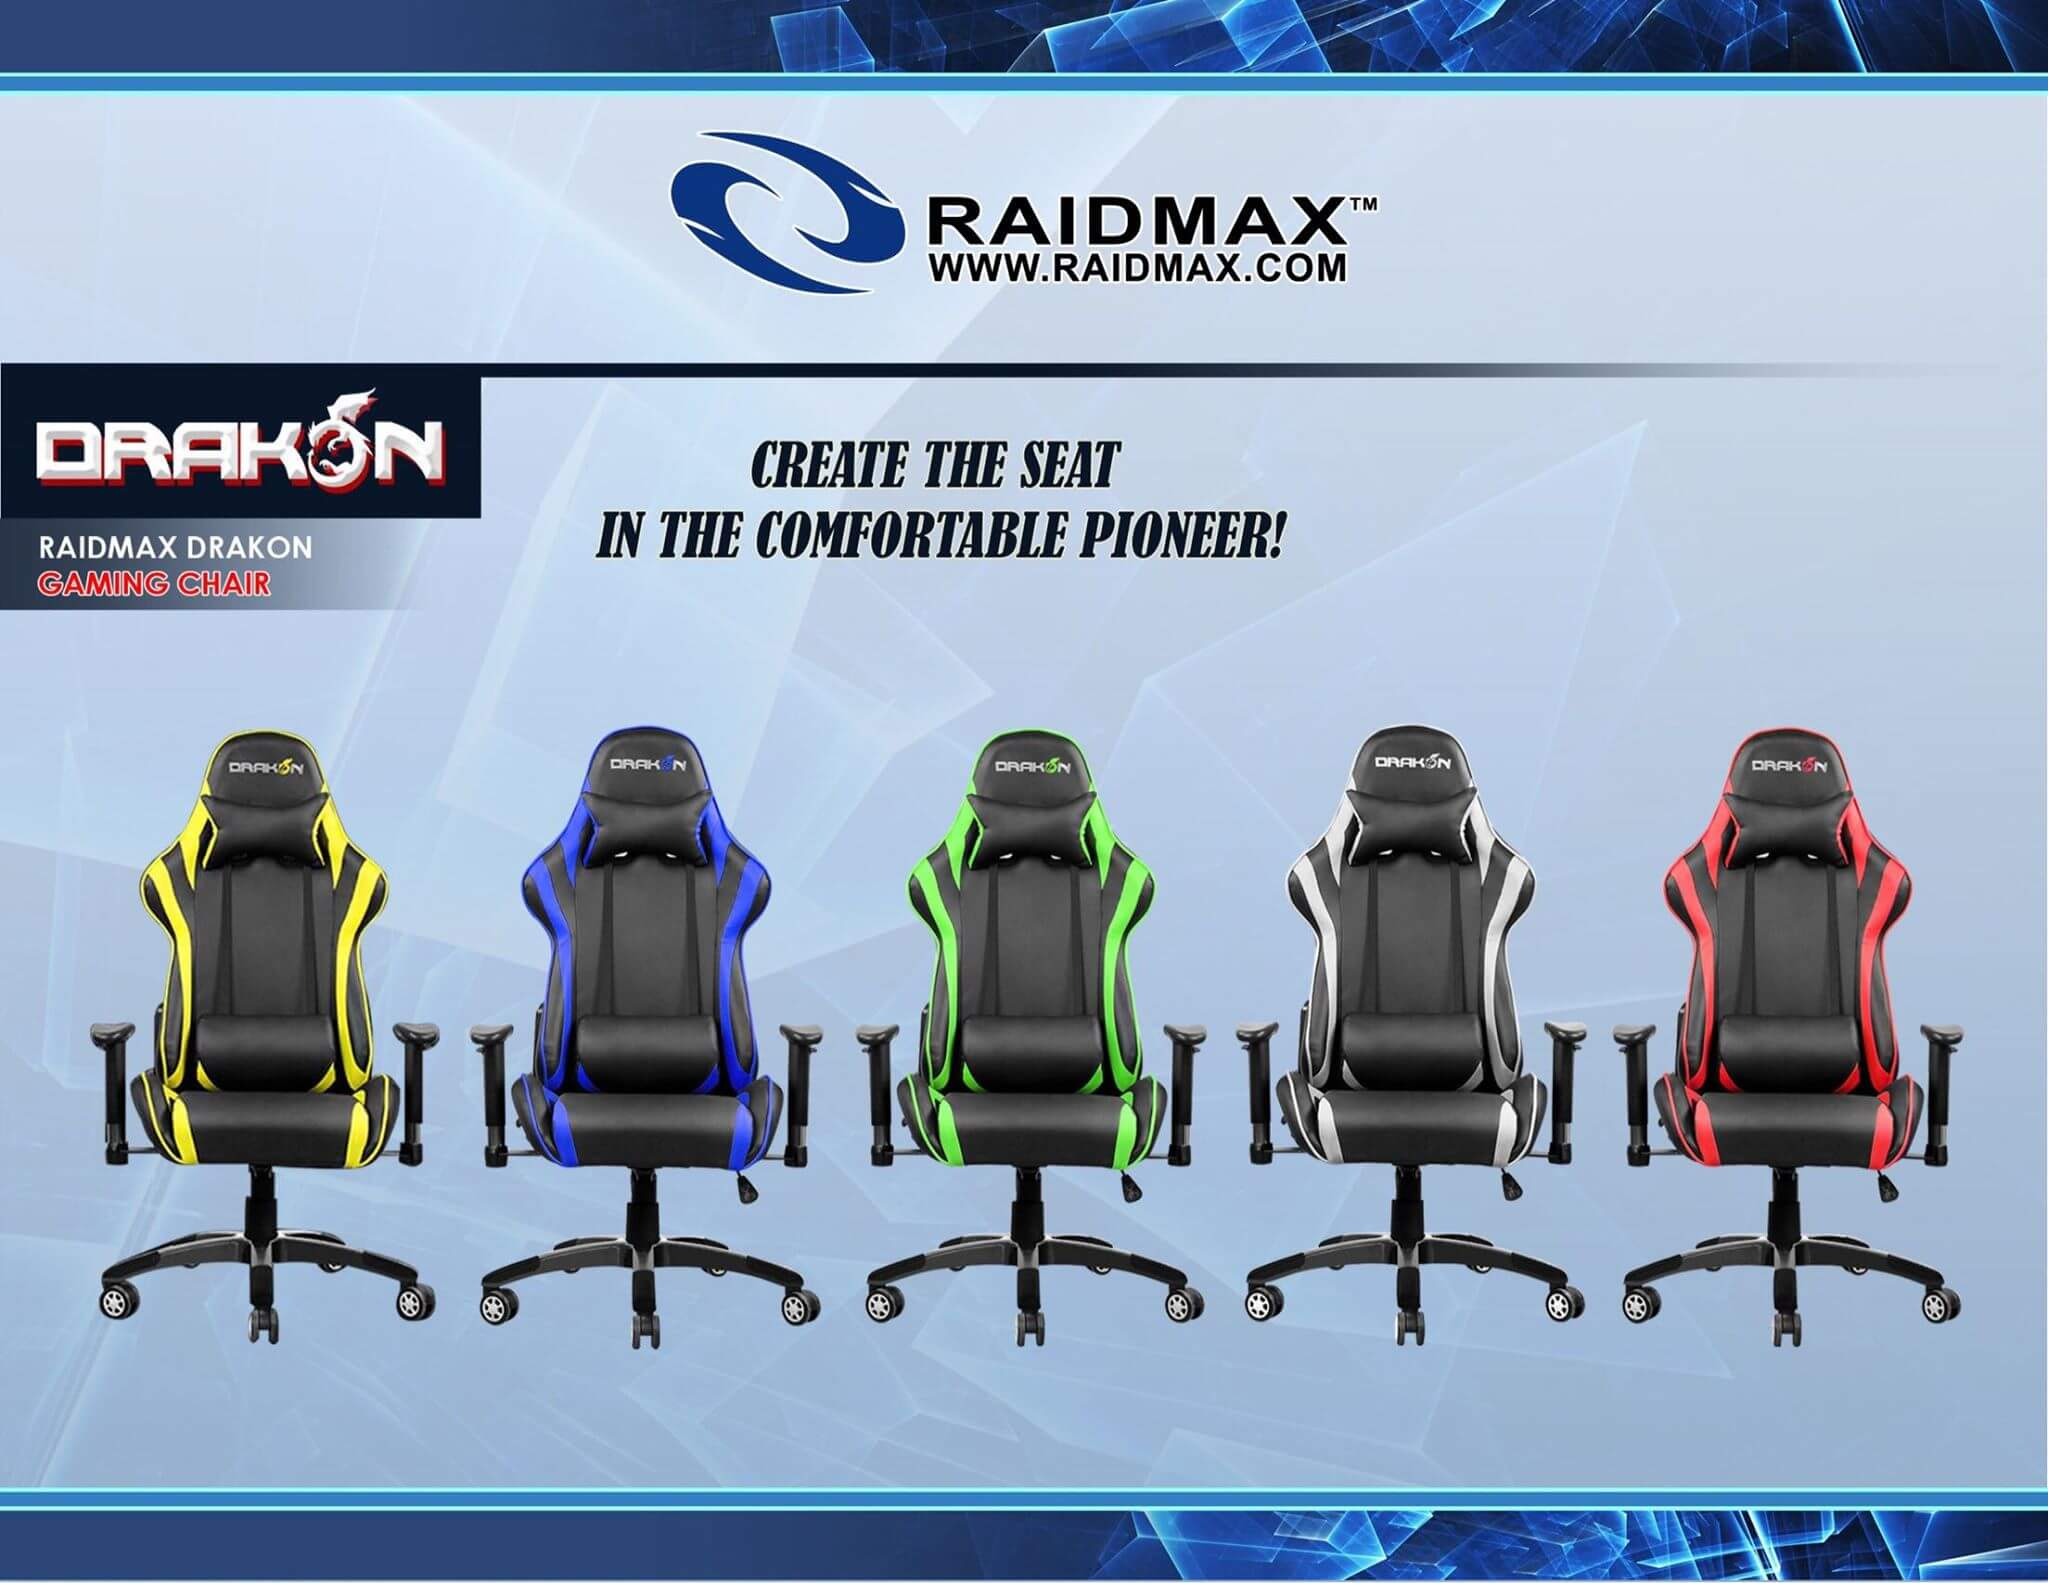 drakon 1 2 - Raidmax Drakon Gaming Chairs Now Available in PH